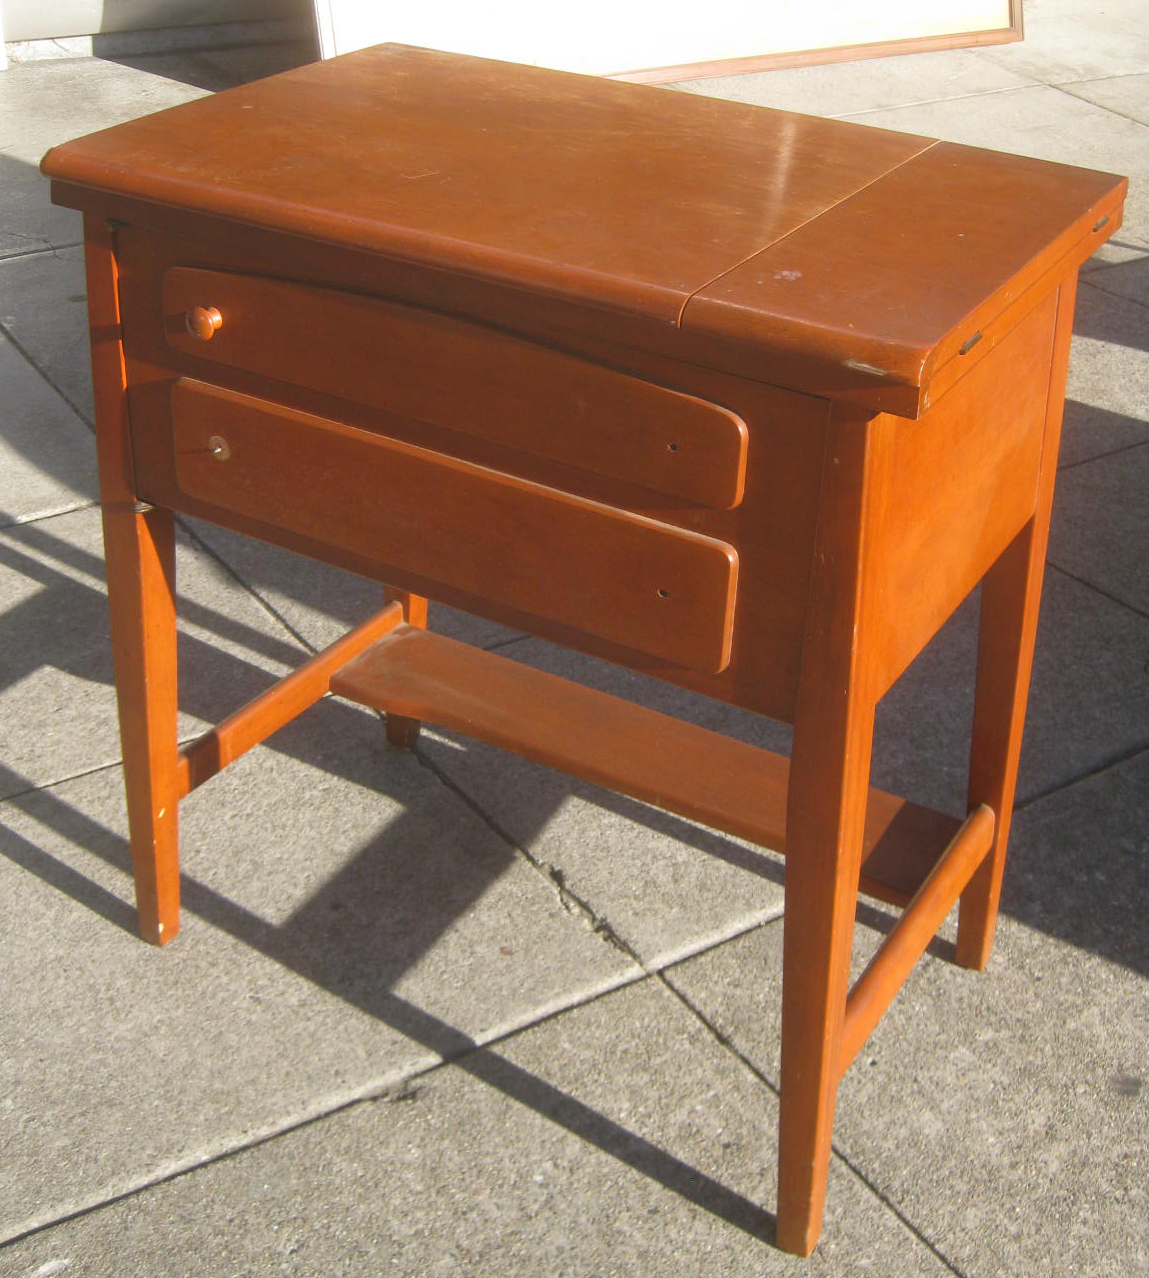 How To Profit From A Home Sewing Business: UHURU FURNITURE & COLLECTIBLES: SOLD